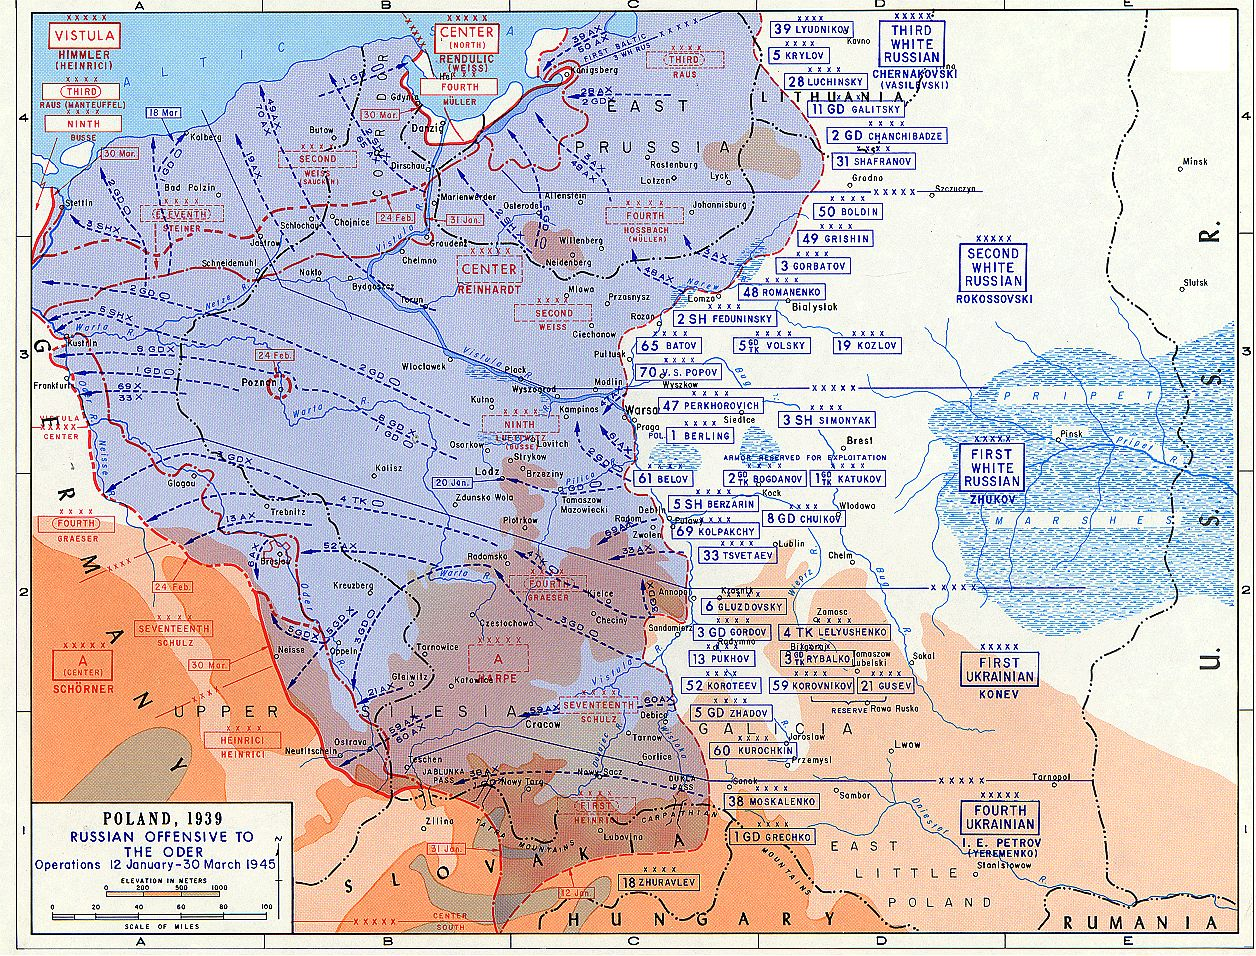 map front     eastern front ww2 second world war two soviet russian offensives maps  jjanuary 12 march 30 1945